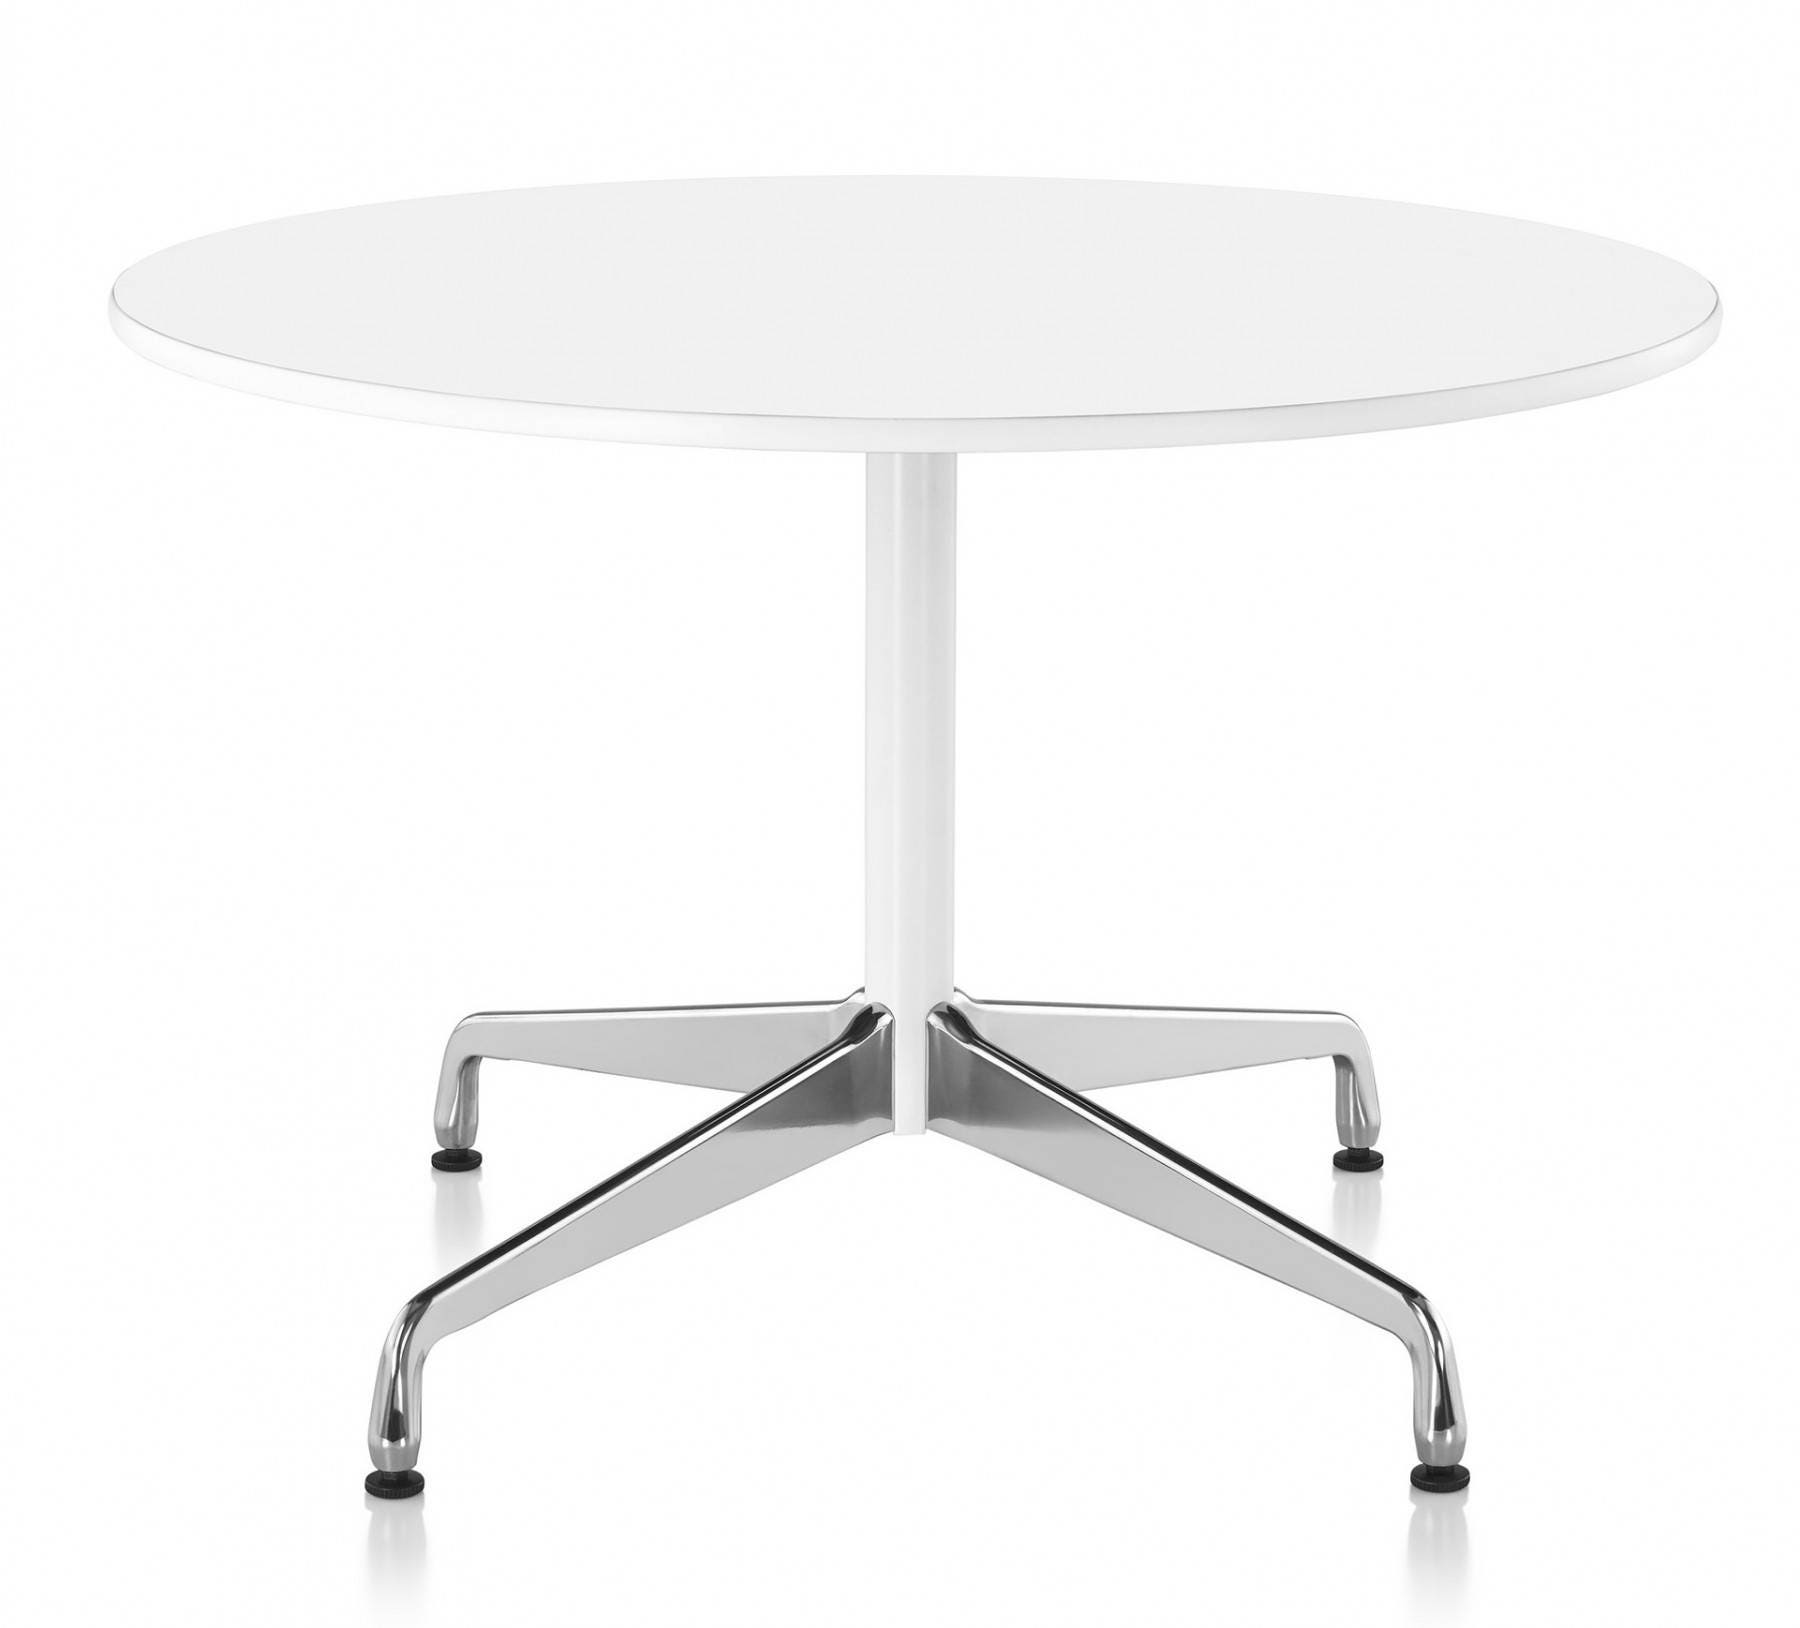 Eames Conference Table Round 1